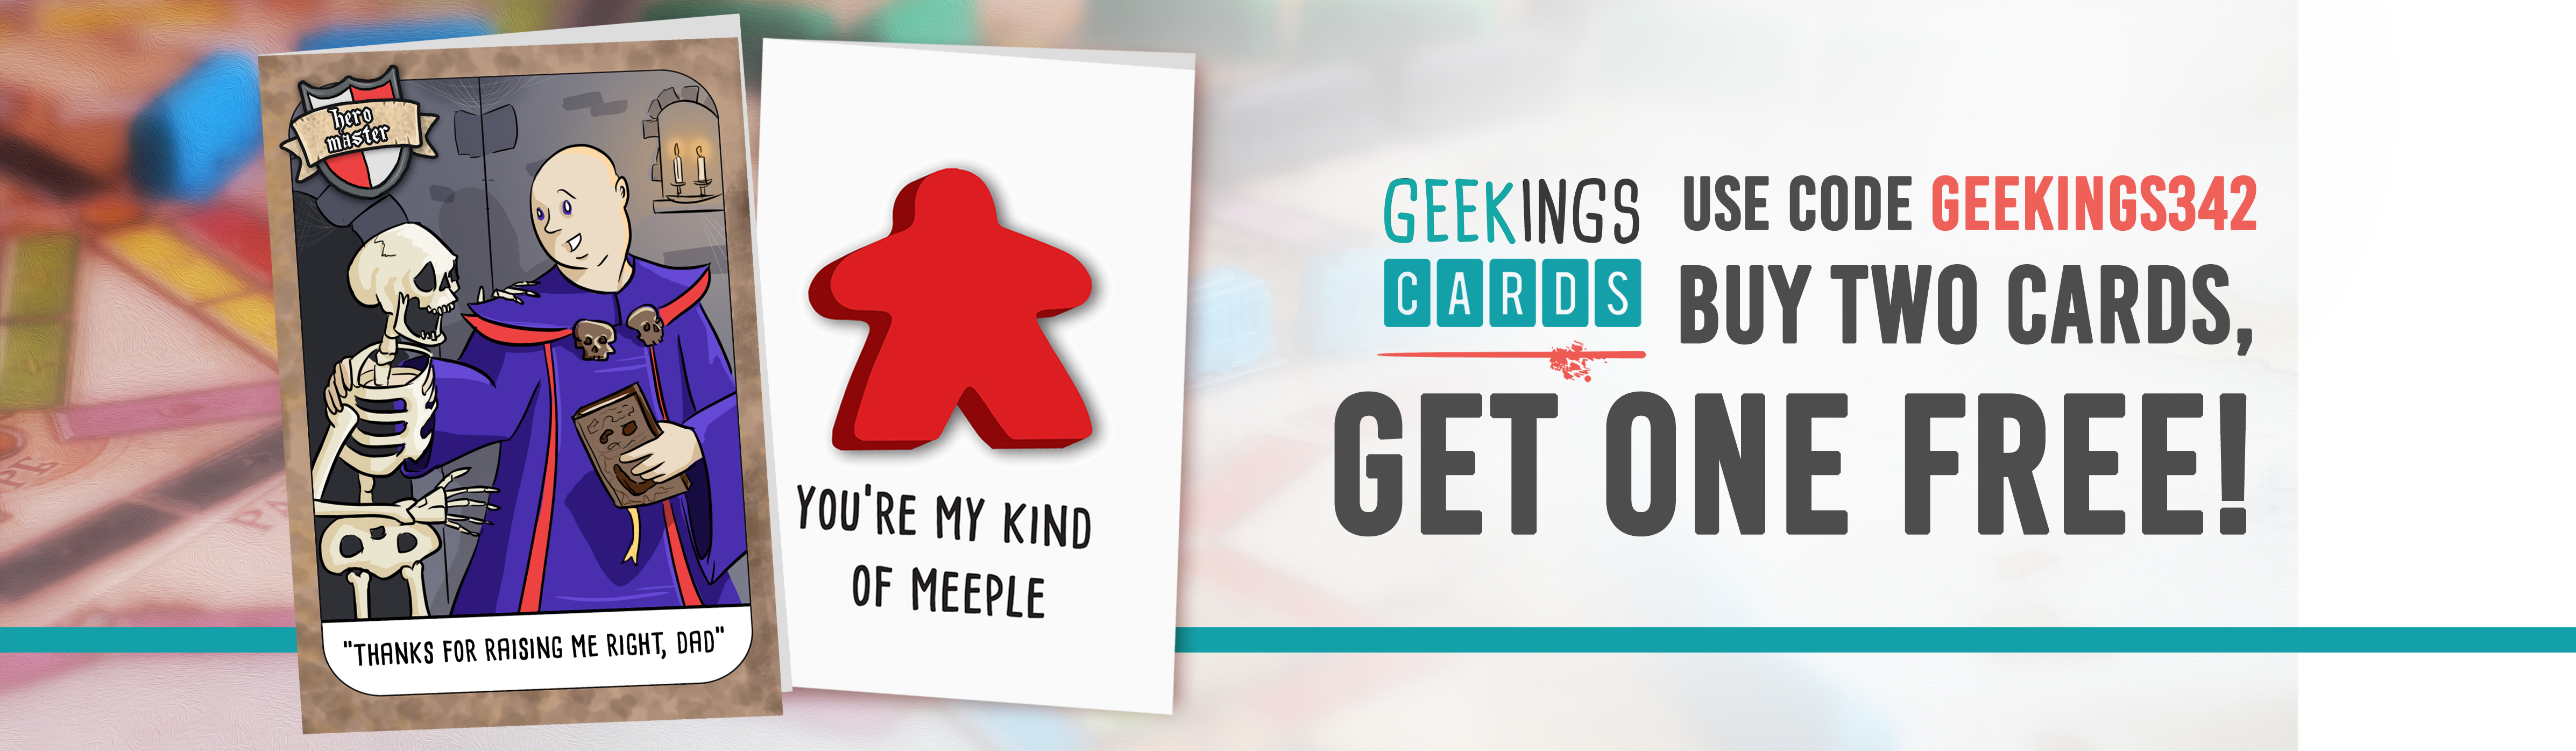 geekings card buy two get one free banner